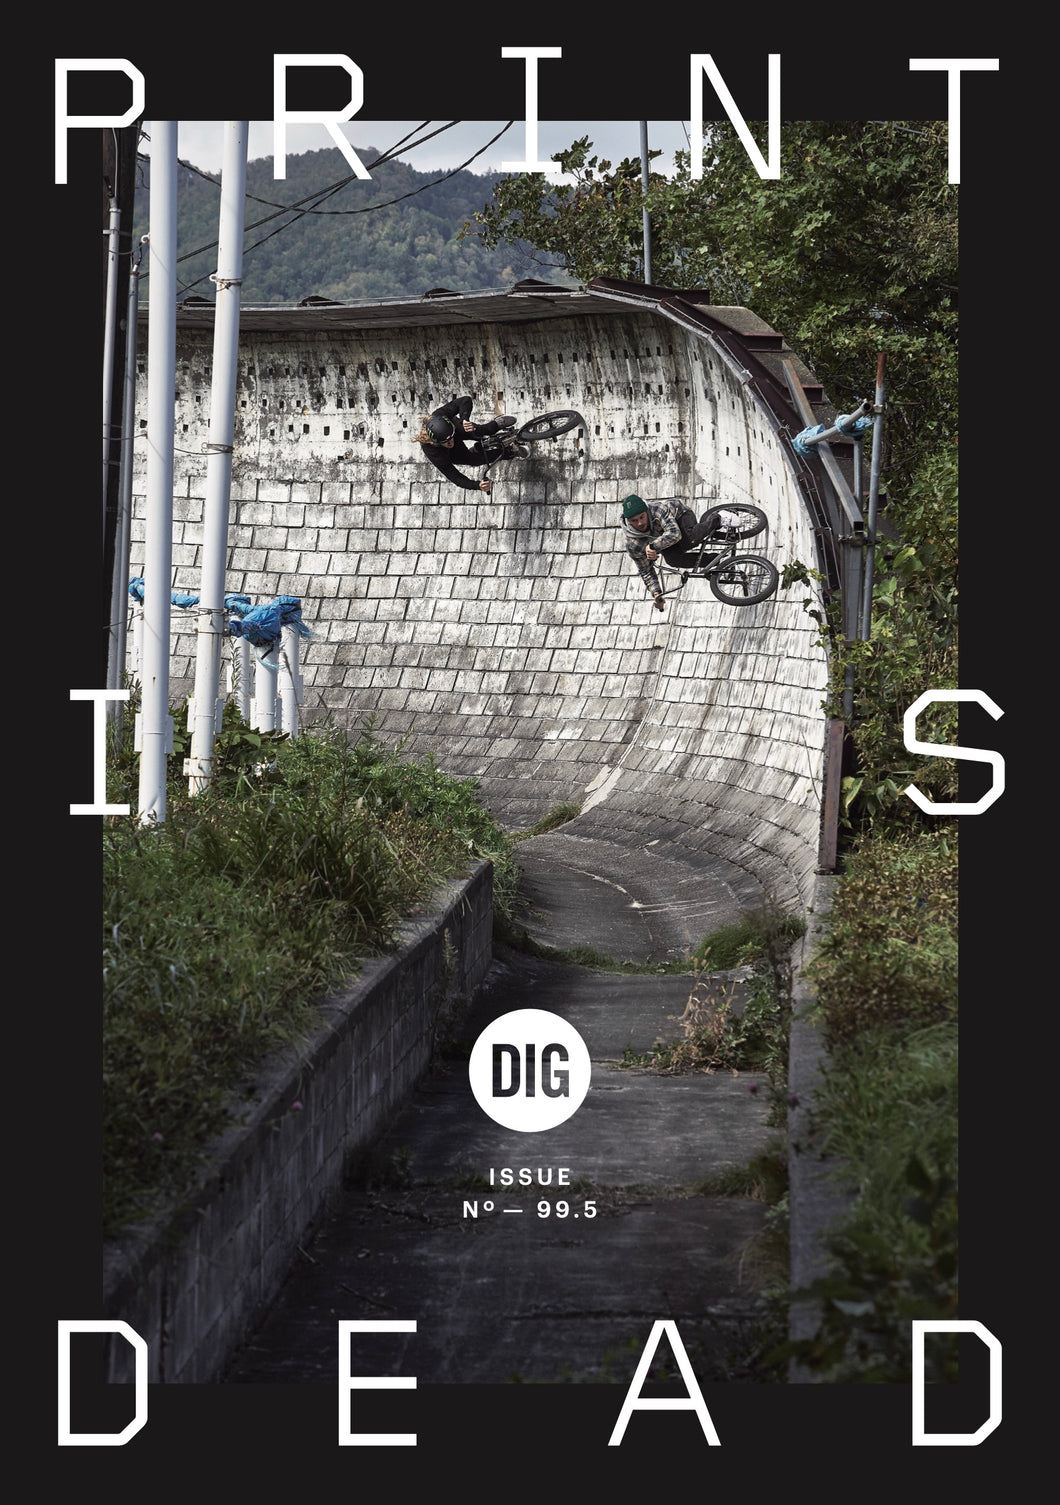 'PRINT IS DEAD' -  DIG MAGAZINE ISSUE 99.5